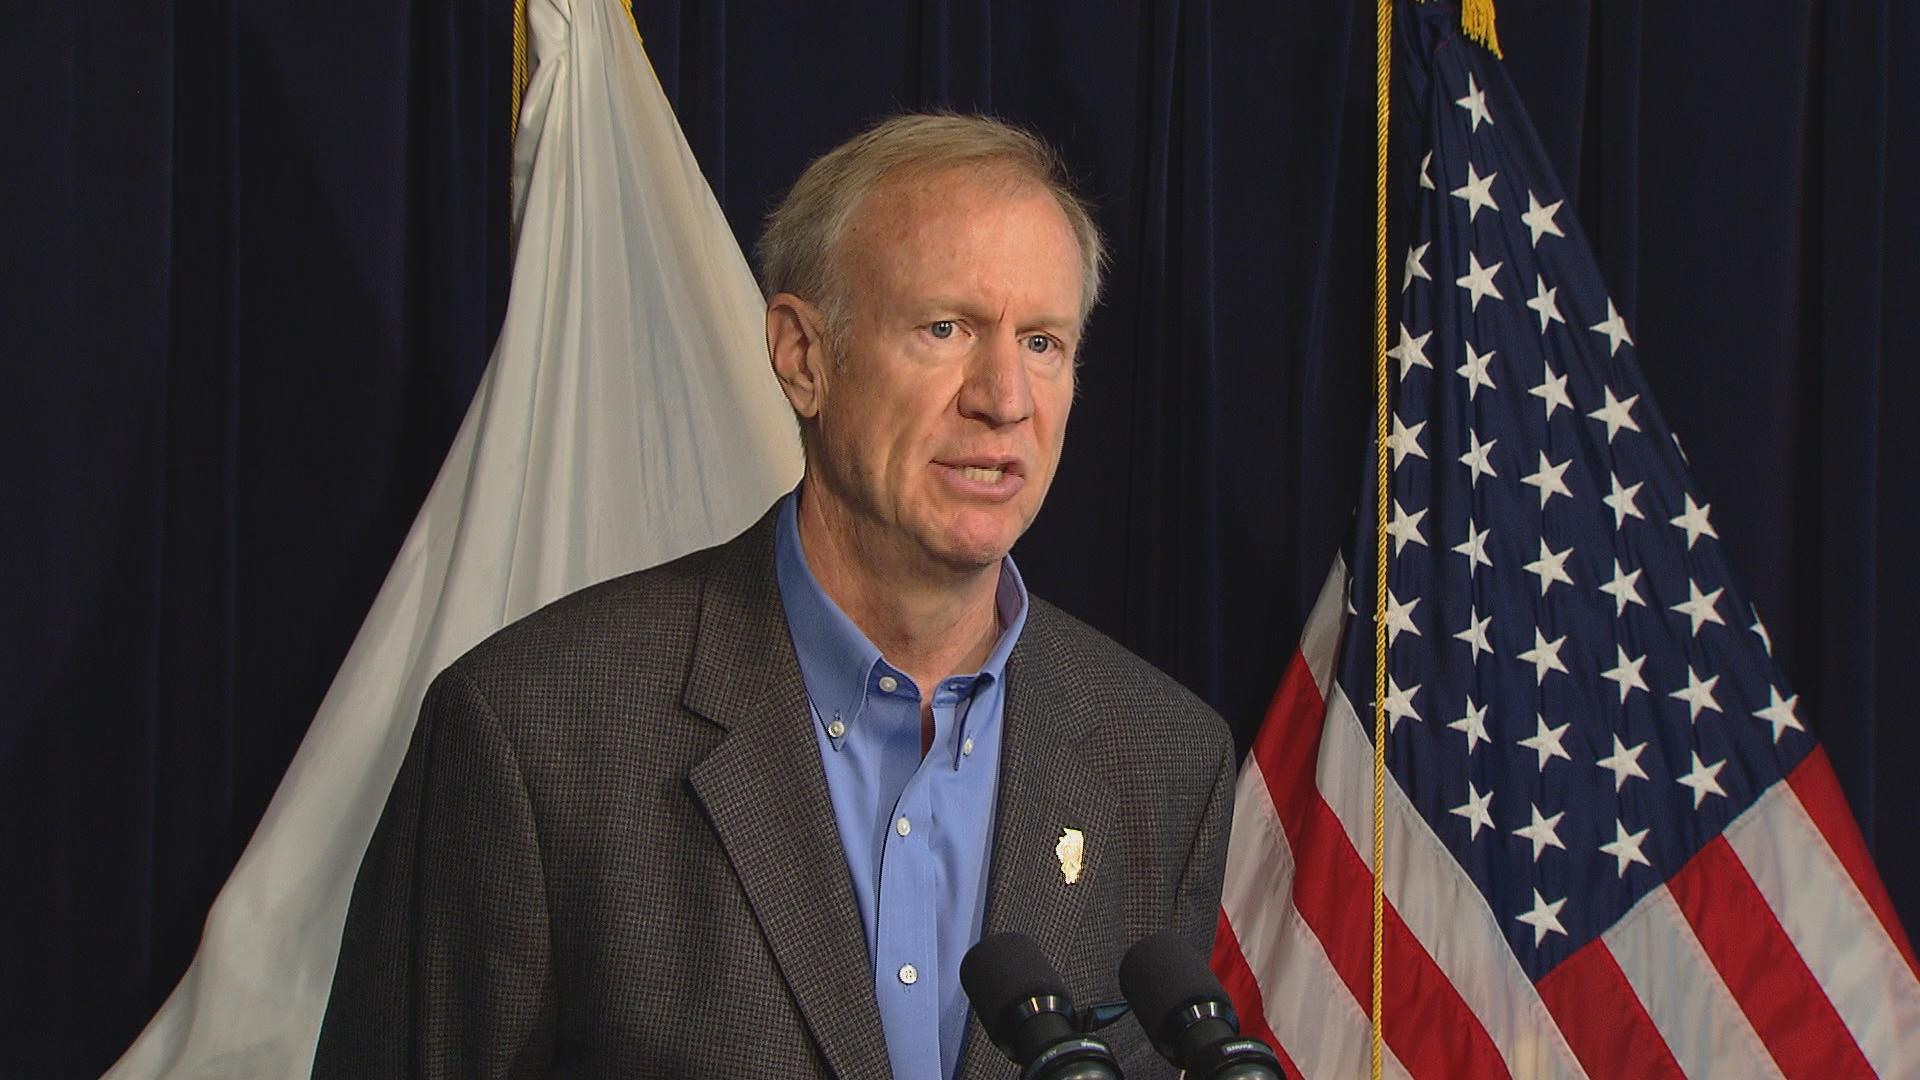 Rauner announces bipartisan commission to improve school funding system